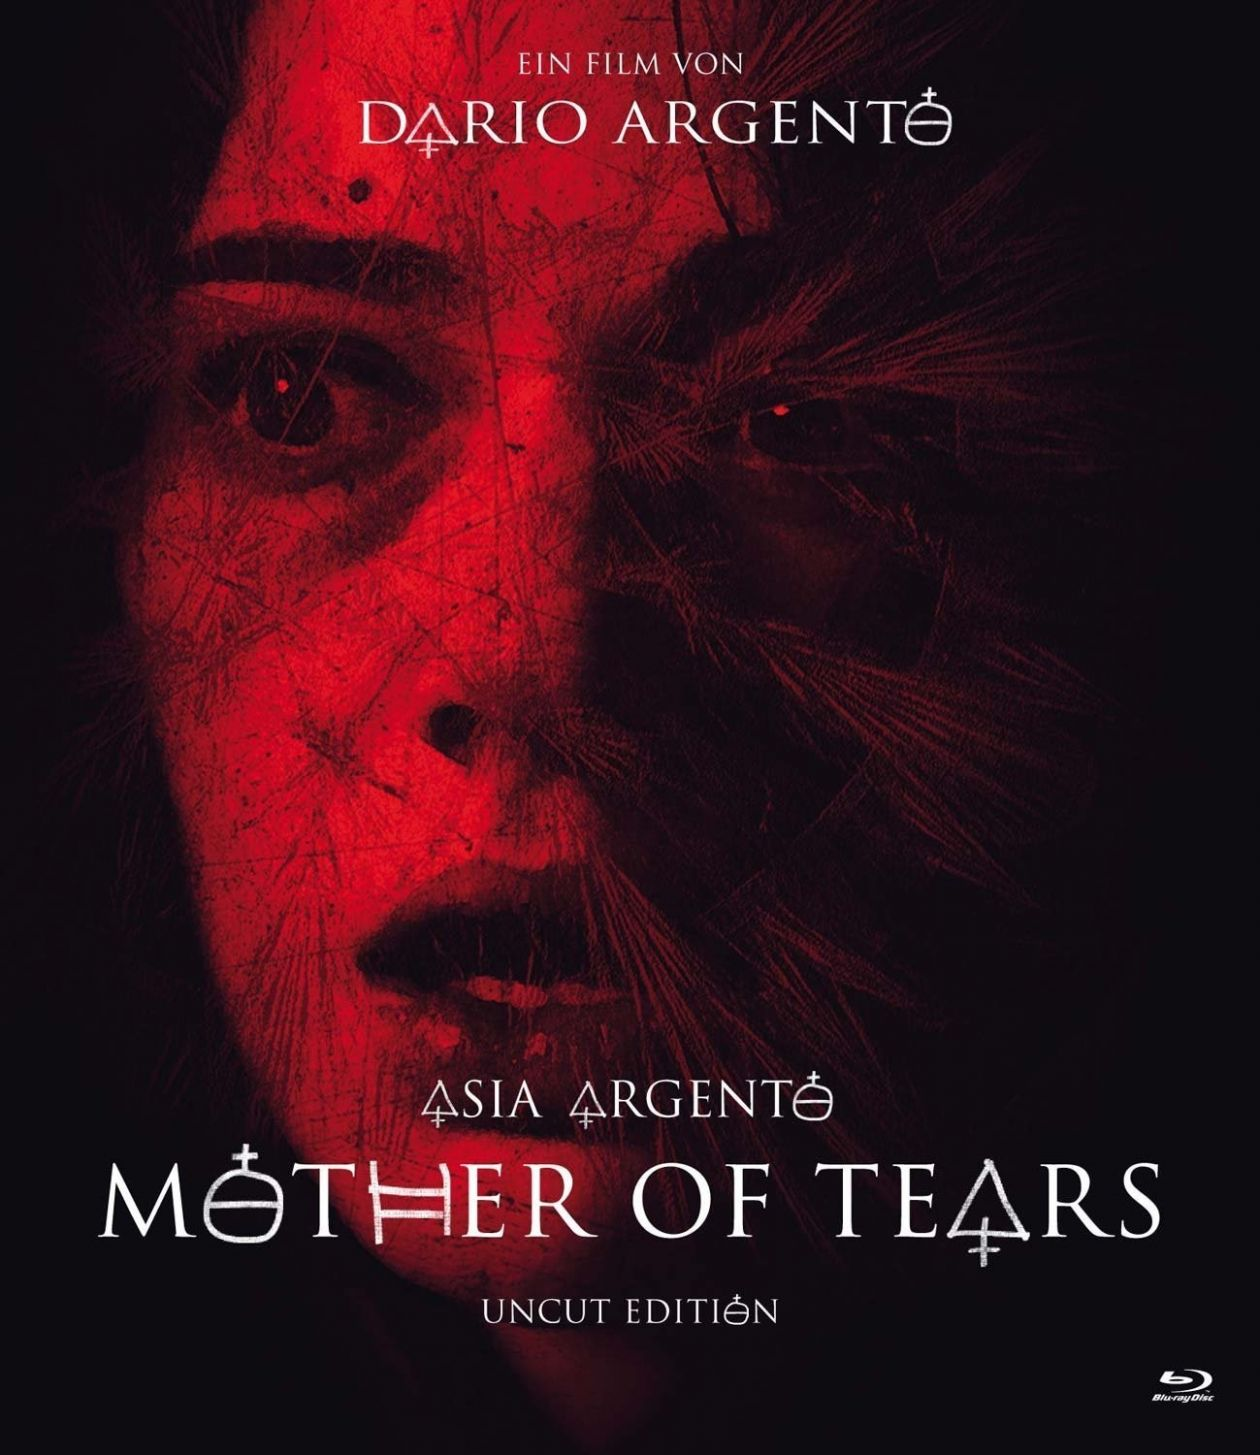 Asia Argento actress | Mother of Tears / Dario Argento 2007 DVD Cover Movie Poster Affiche film